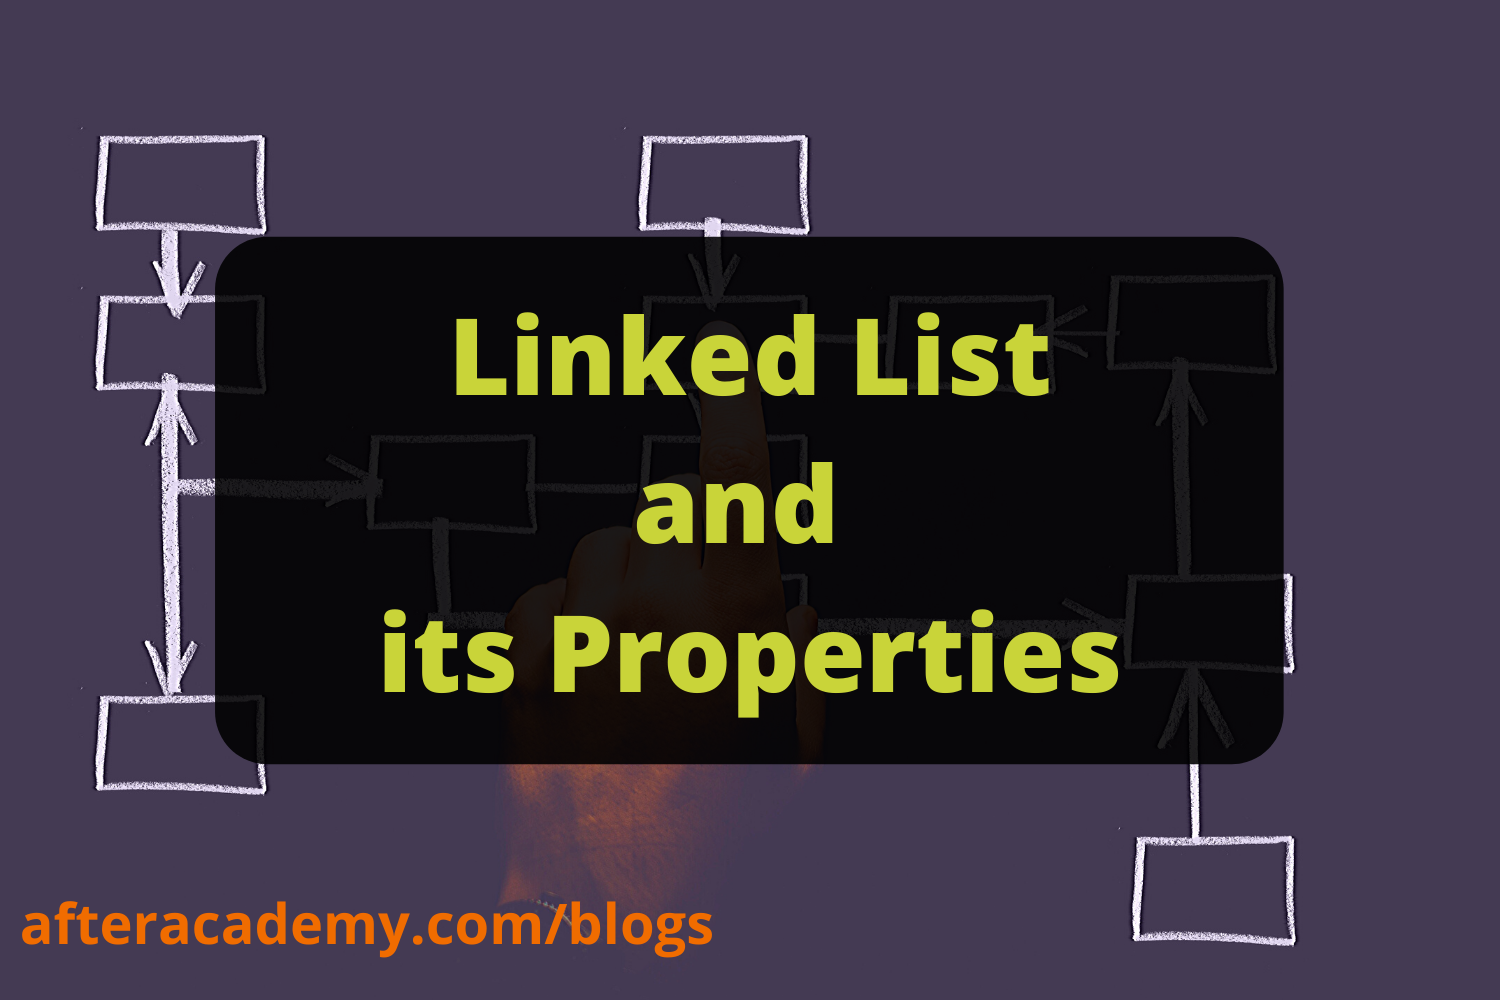 Linked List and its Properties